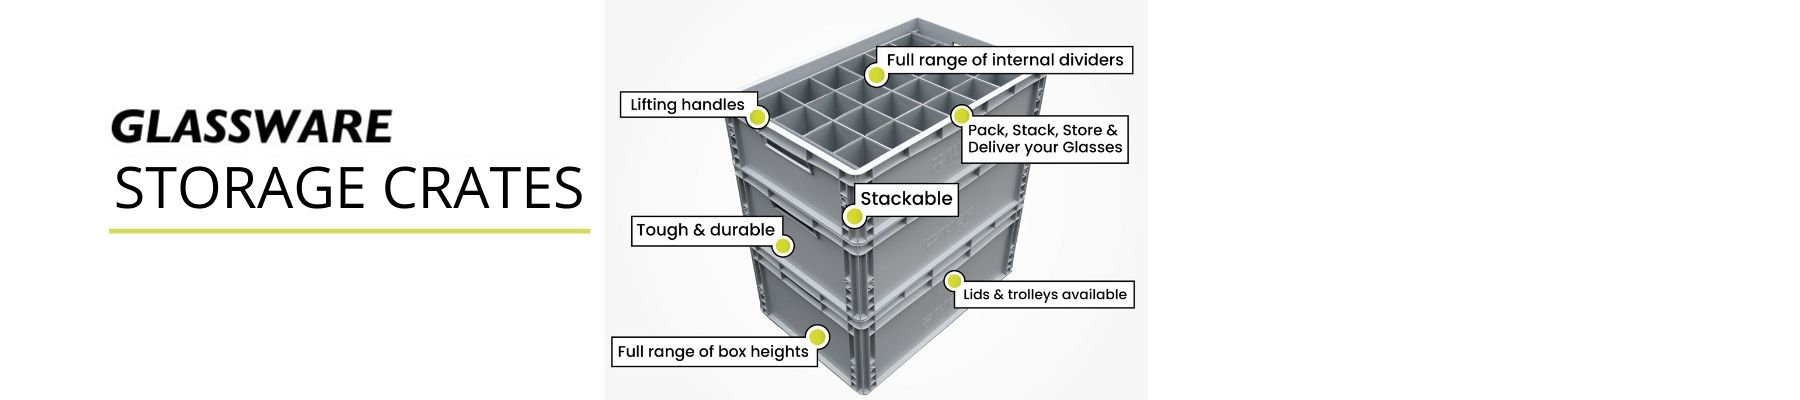 GLASS STORAGE EURO CRATES